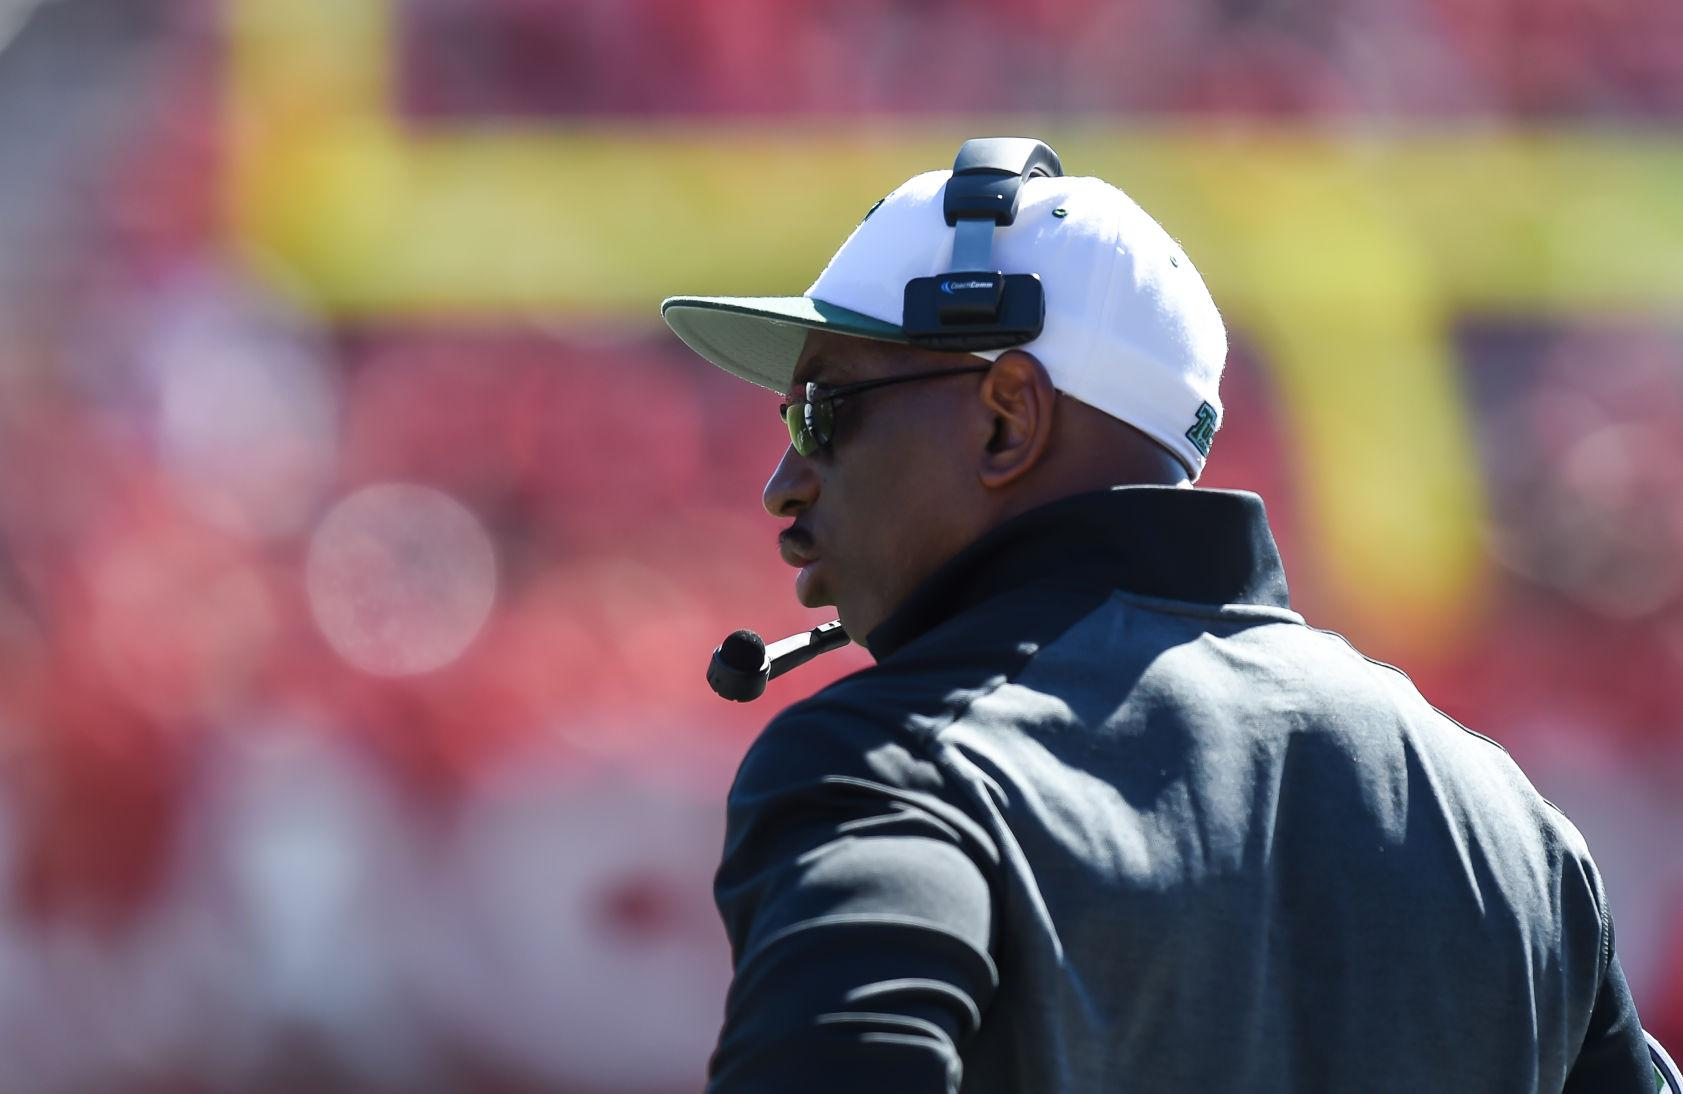 Football head coach Curtis Johnson pacing the sidelines in the 31-6 loss against Rutgers Sept. 27, in Piscataway, New Jersey. Johnson consistently wears the black sunglass, flat-rim hat look each game.